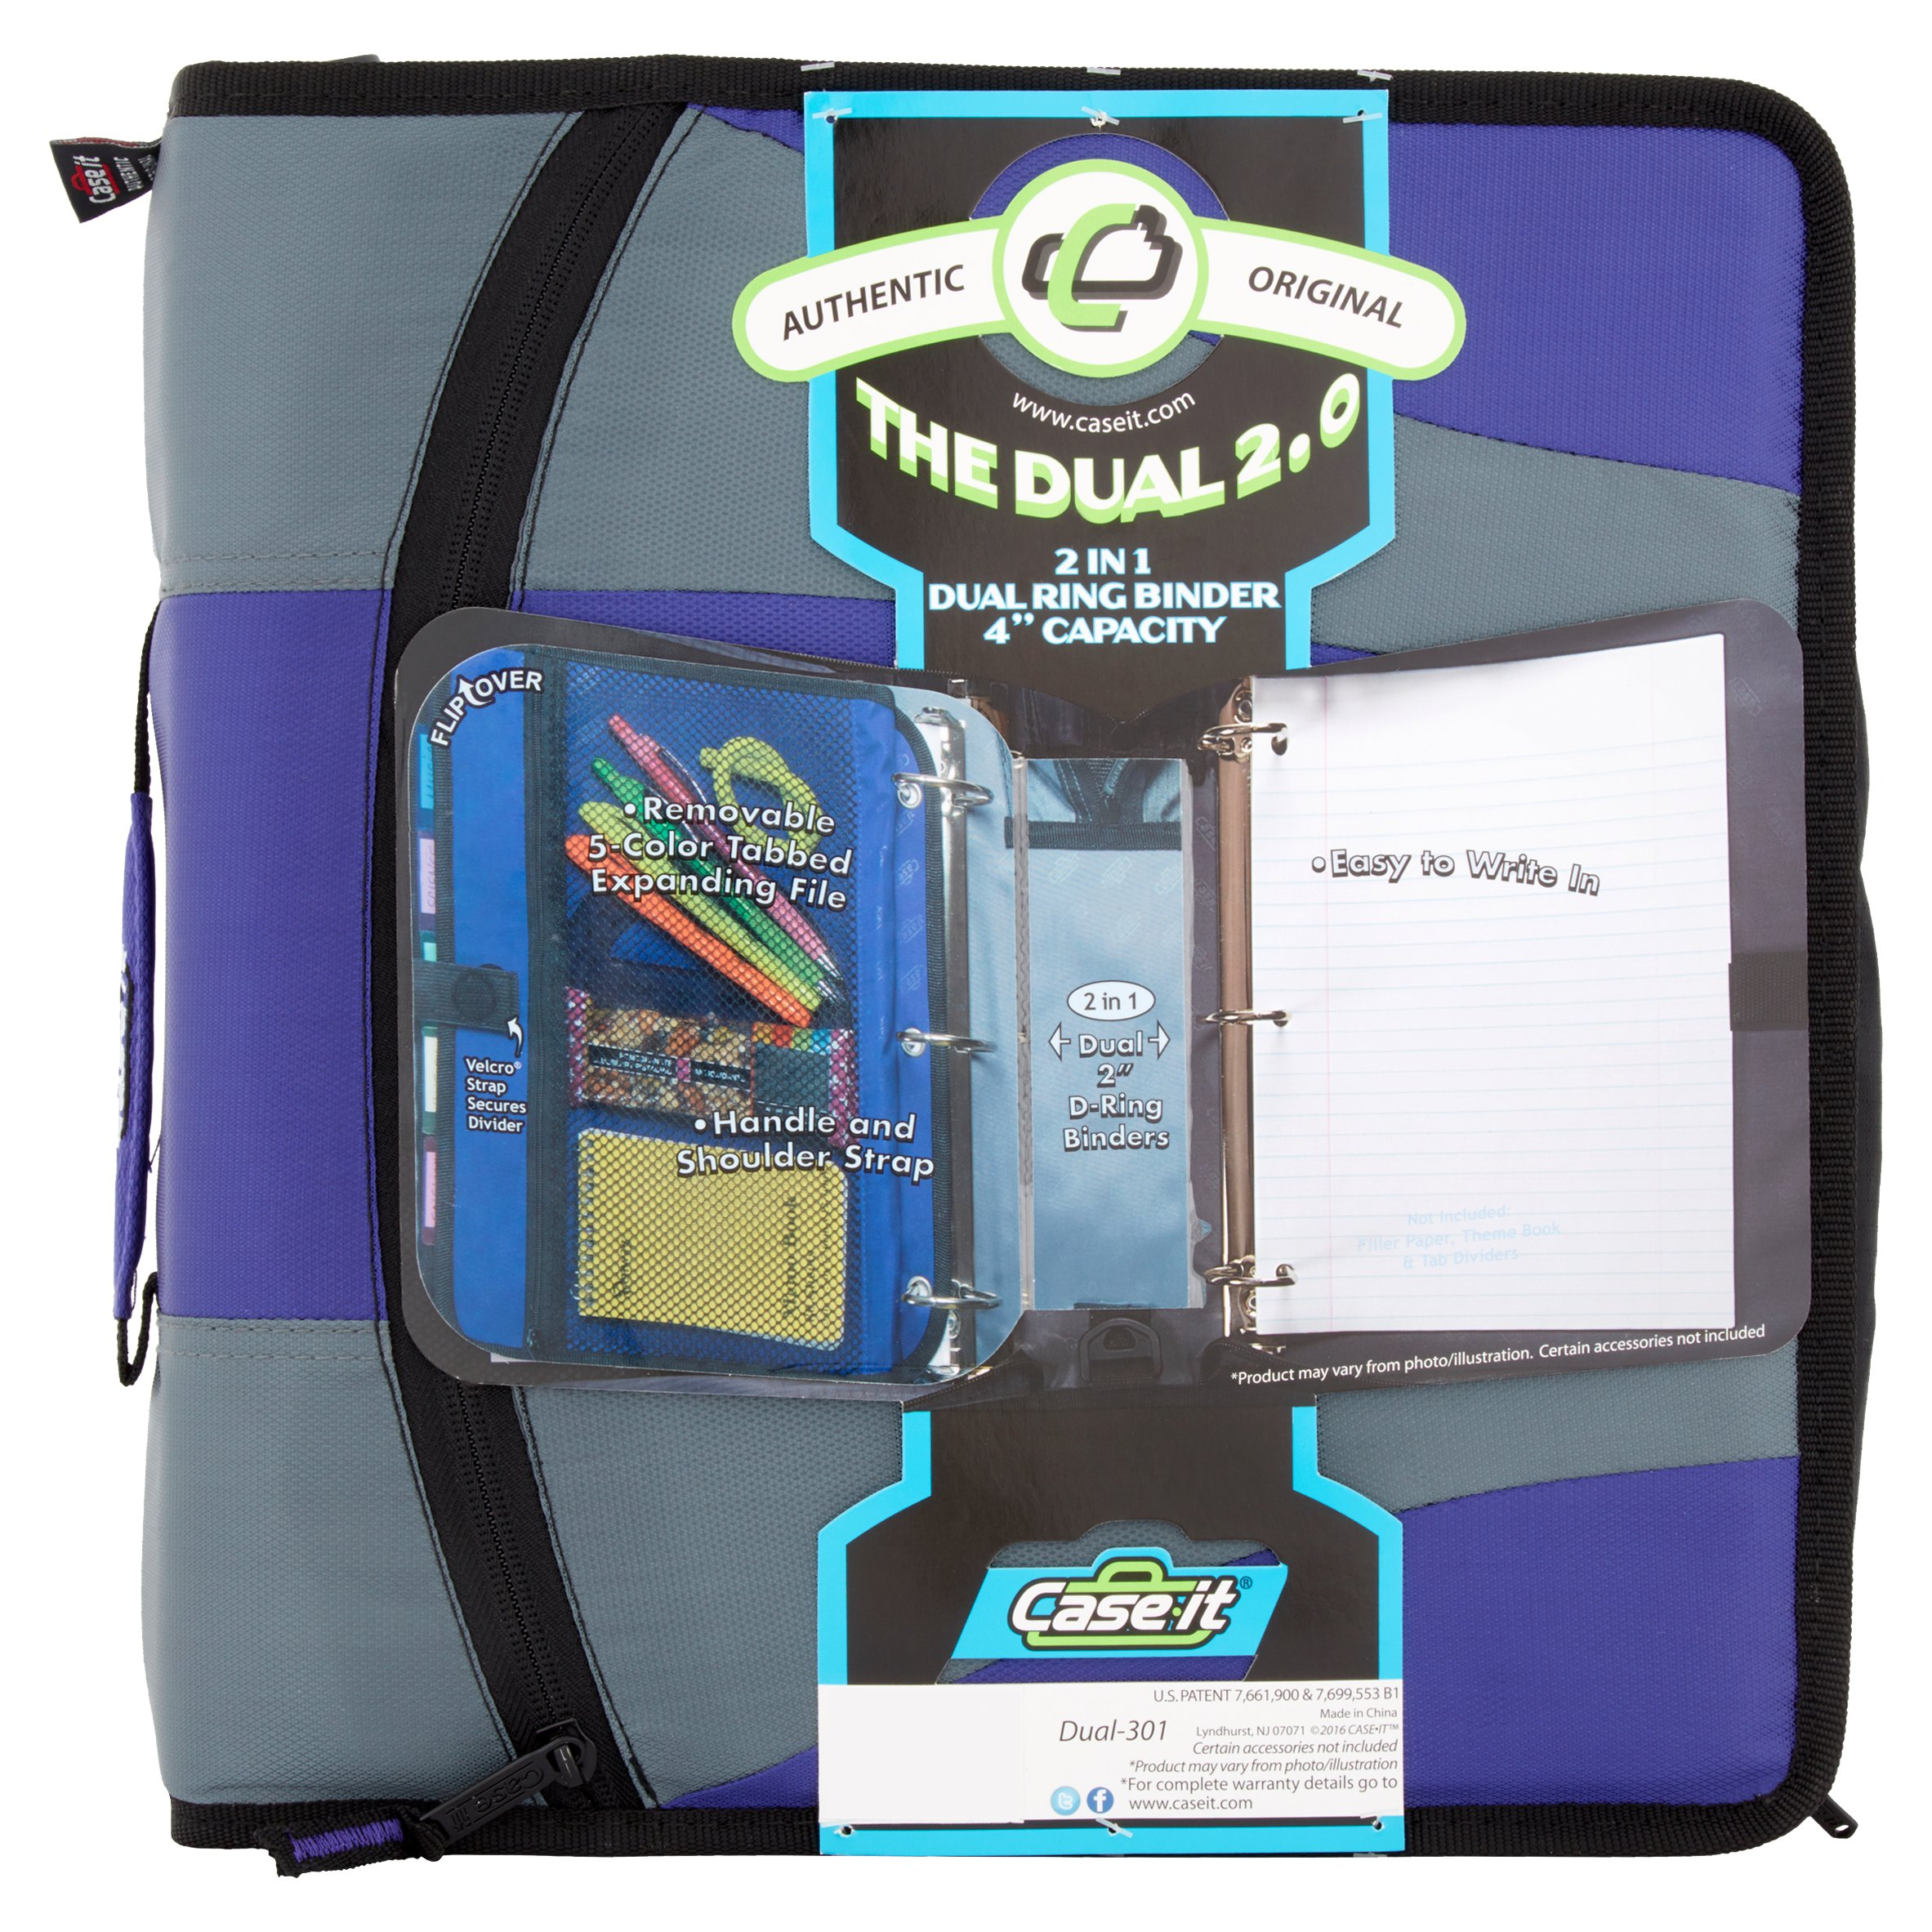 "Case-It® The Dual 2.0 4"" Capacity 2 in 1 Binder"